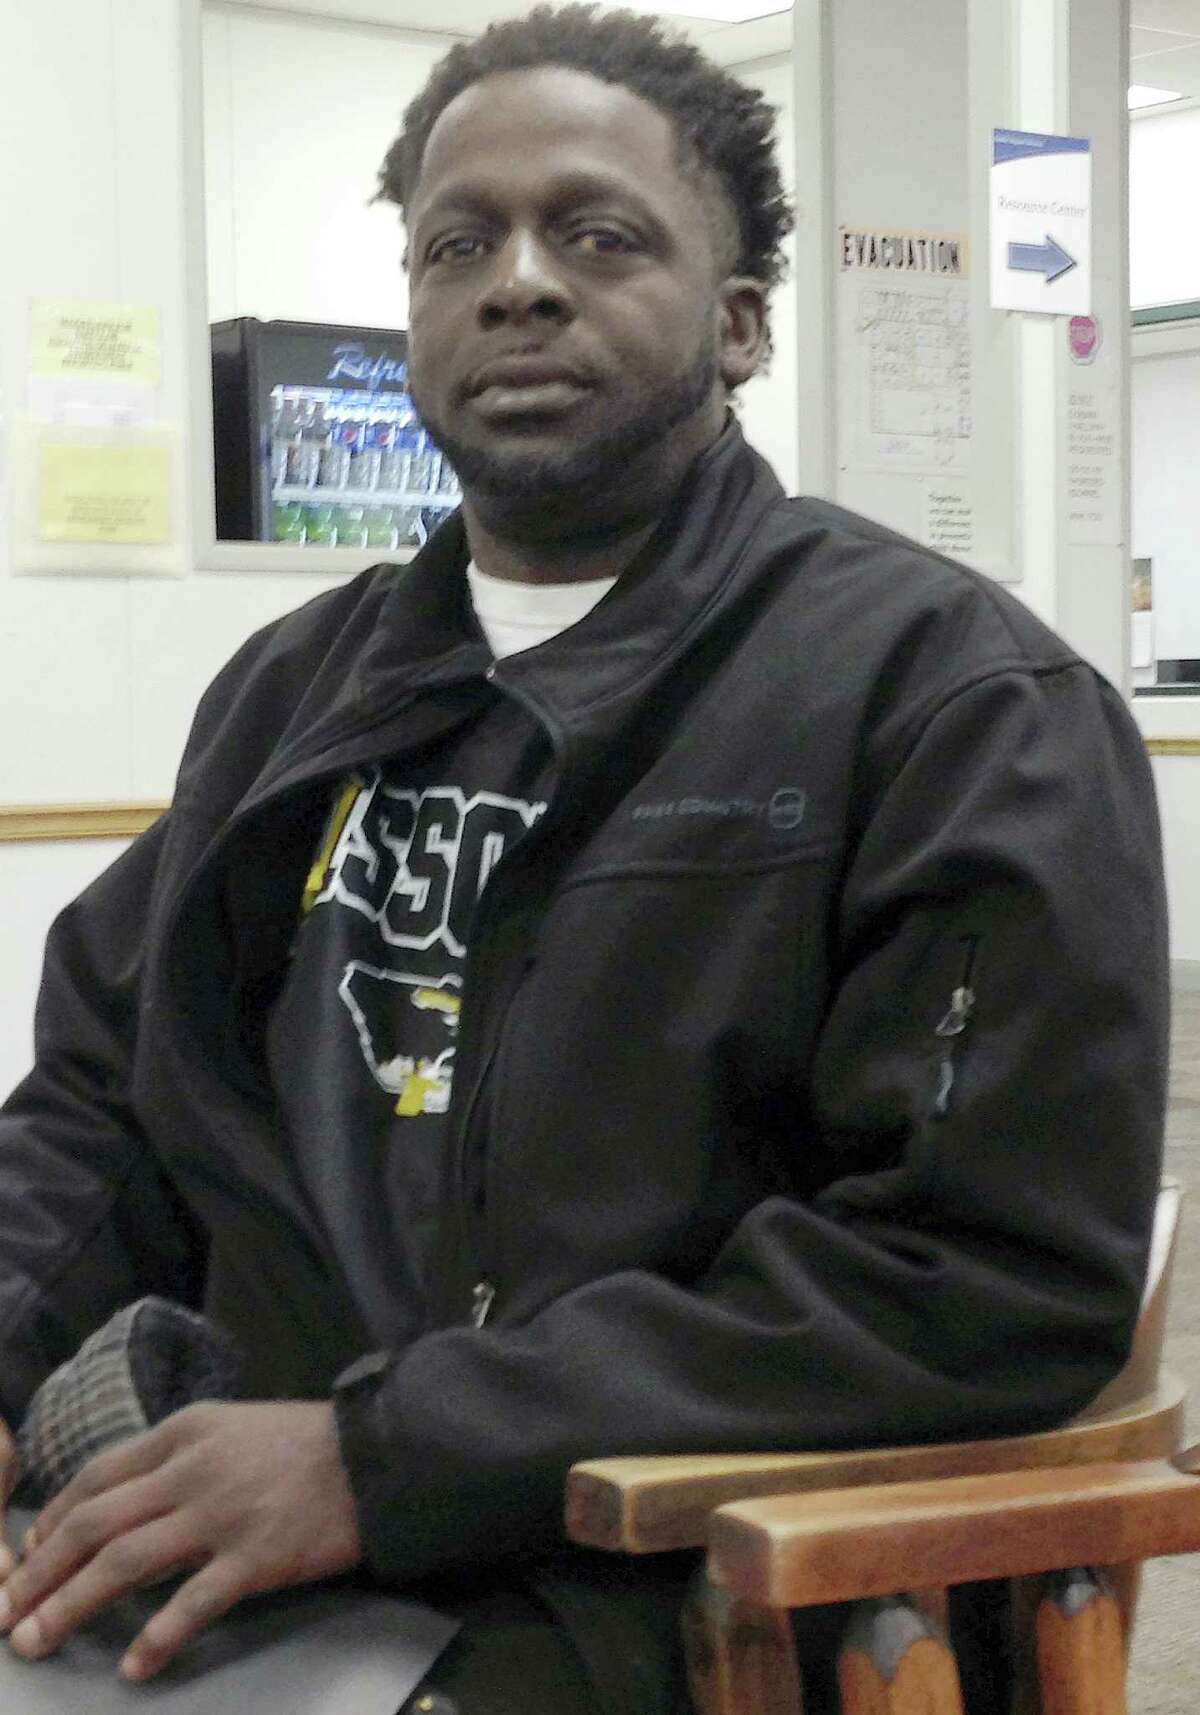 In this Feb 8, 2016 photo, Demetrius White sits in a chair at a state career center in Jefferson City, Mo. White, who is receiving unemployment benefits, had gone to the center to get information about temporary job agencies. He is among the first group of unemployed workers in Missouri whose maximum benefits were cut from 20 weeks to 13 weeks under a state law that took effect in January.